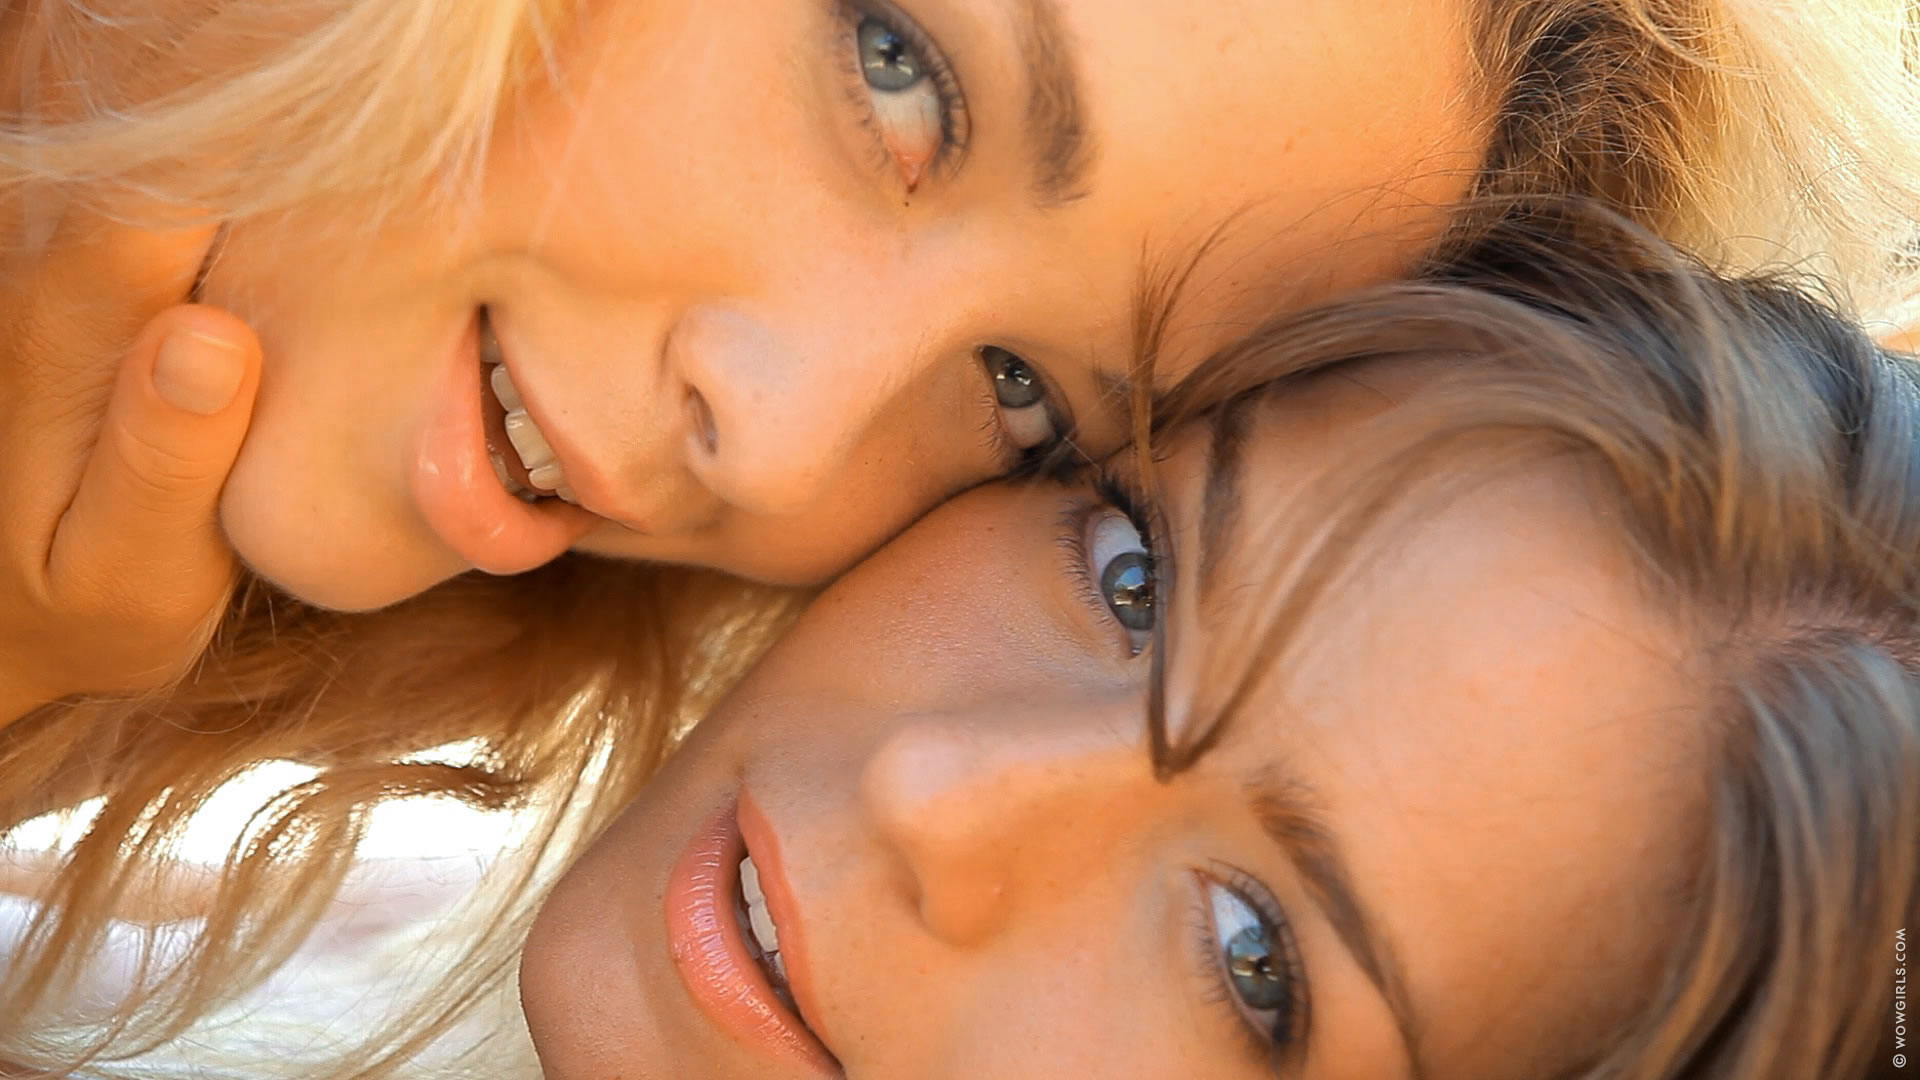 Two fresh lesbian teen babes give rimjob to each other